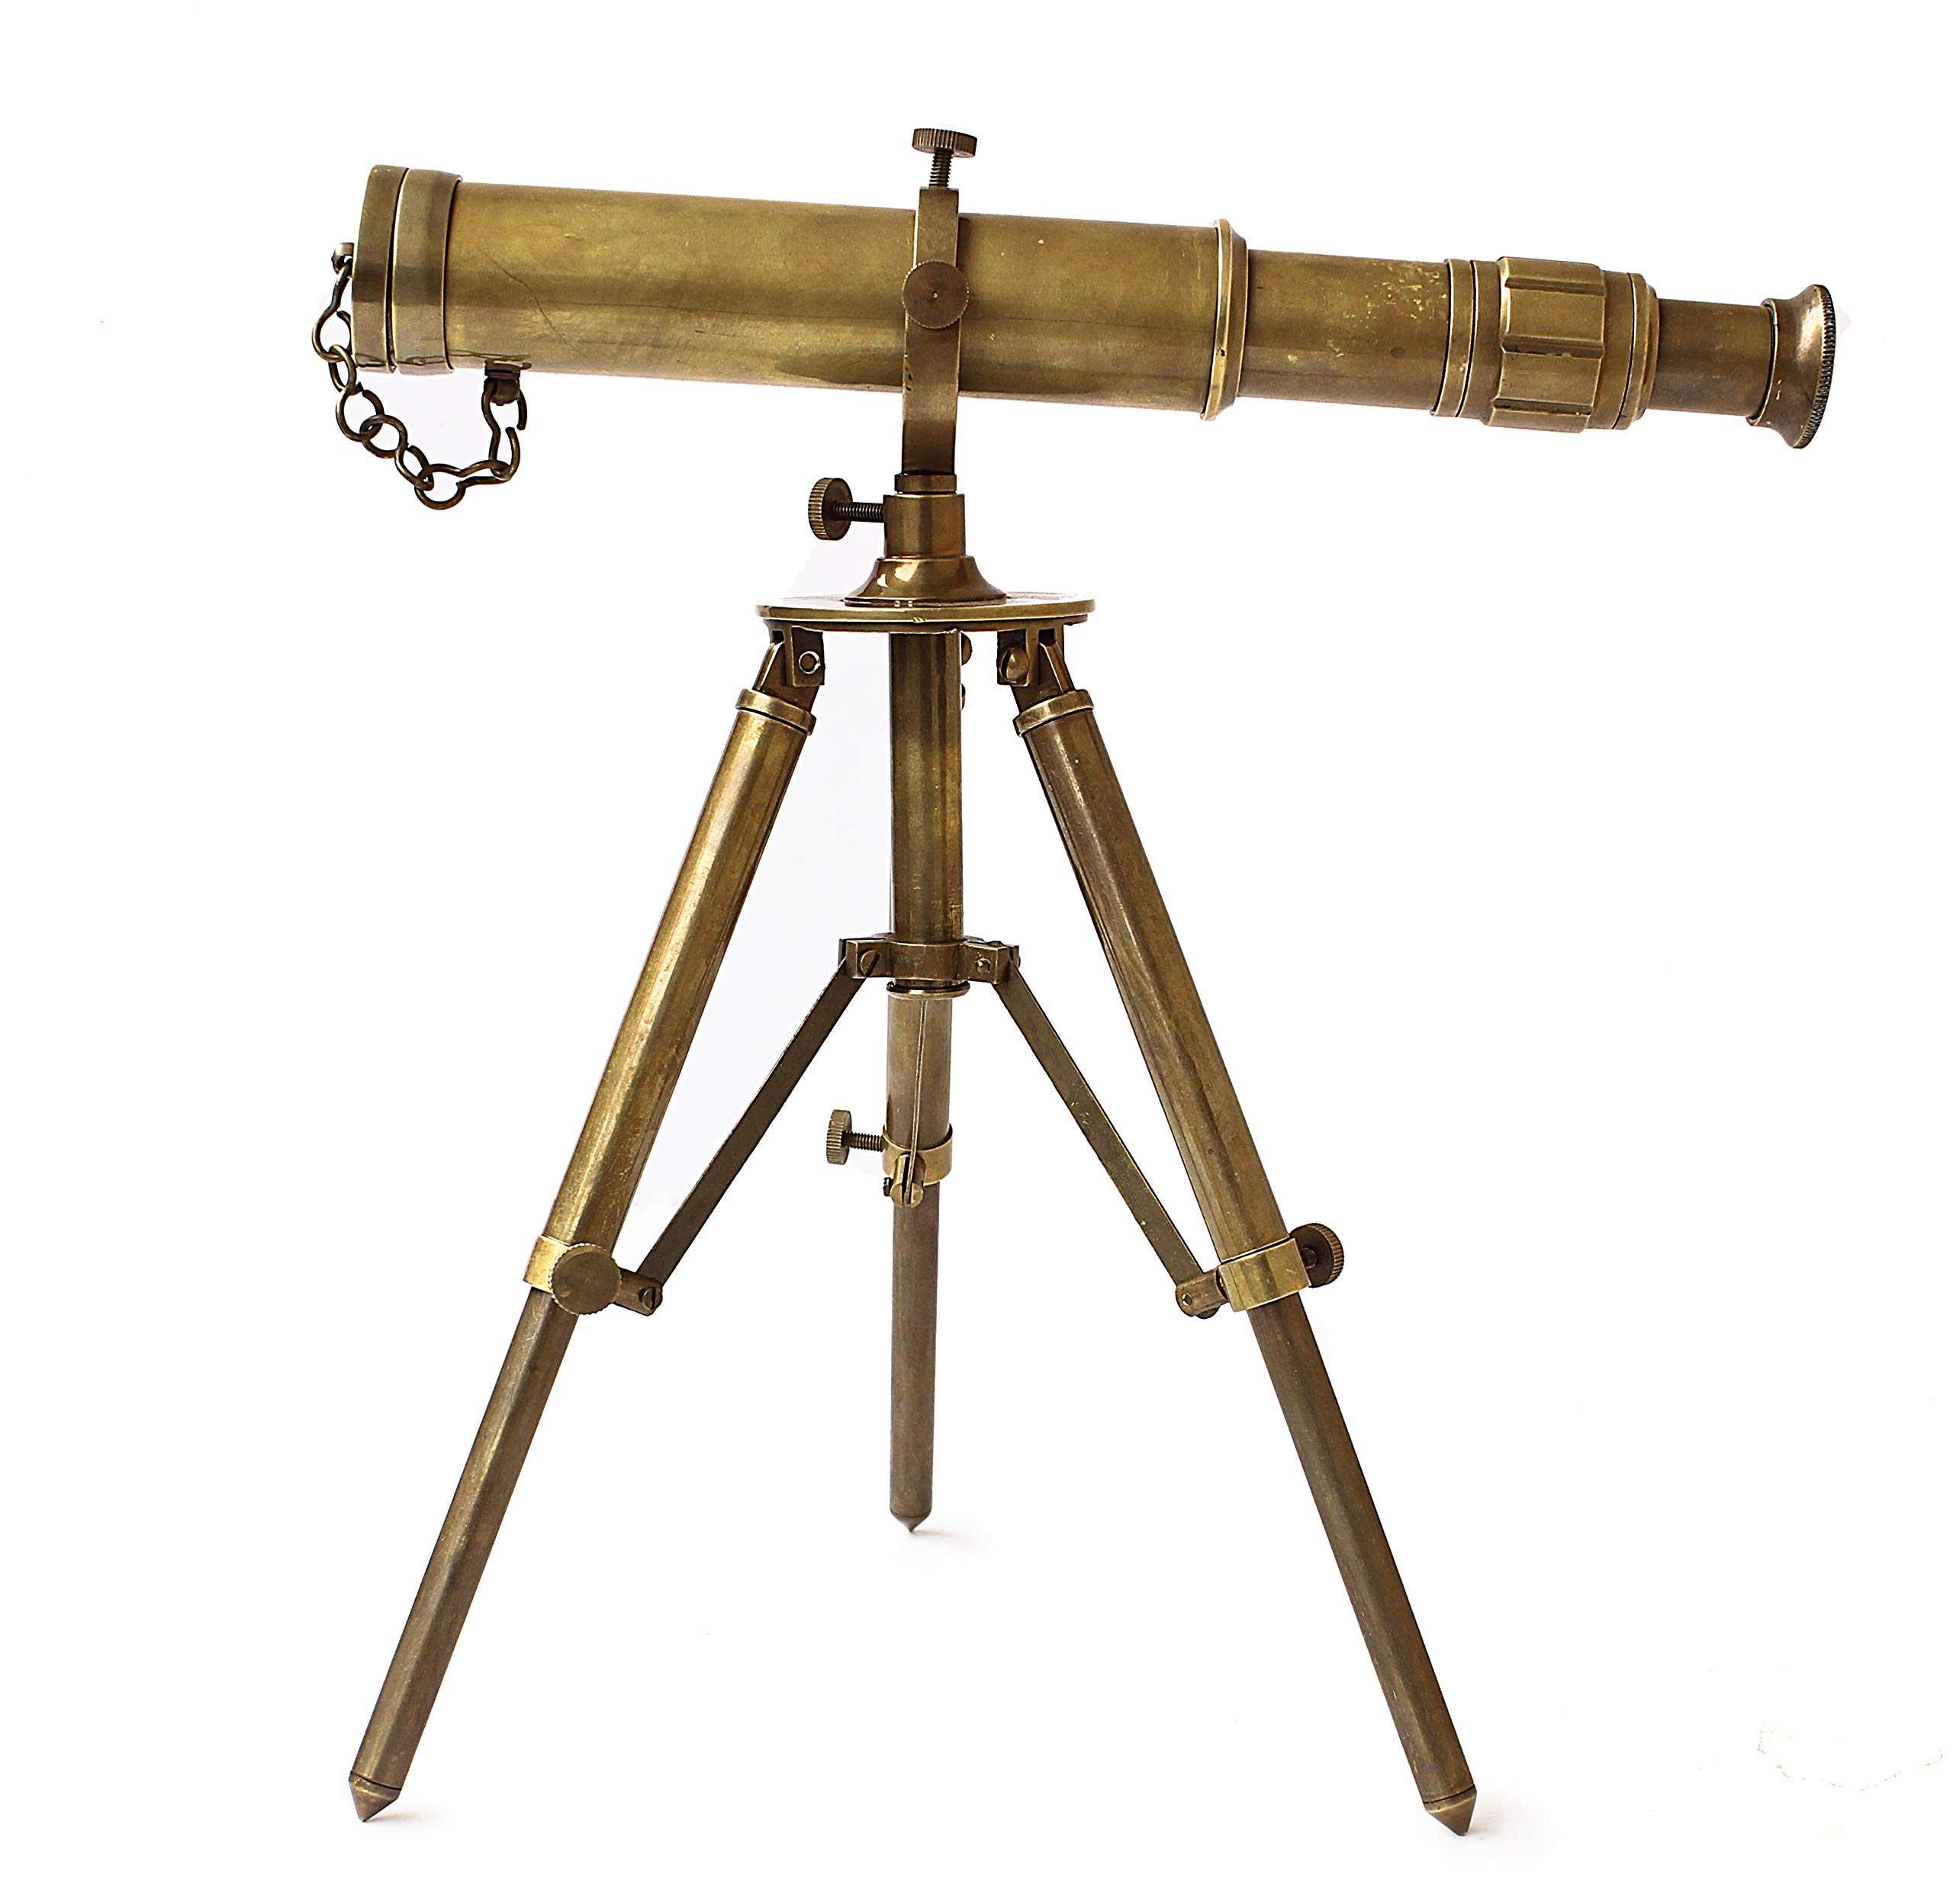 Collectibles Buy Vintage Table Decorative Brass Telescope with Tripod Maritime Ship Instrument Marine Gifts Item by Collectibles Buy